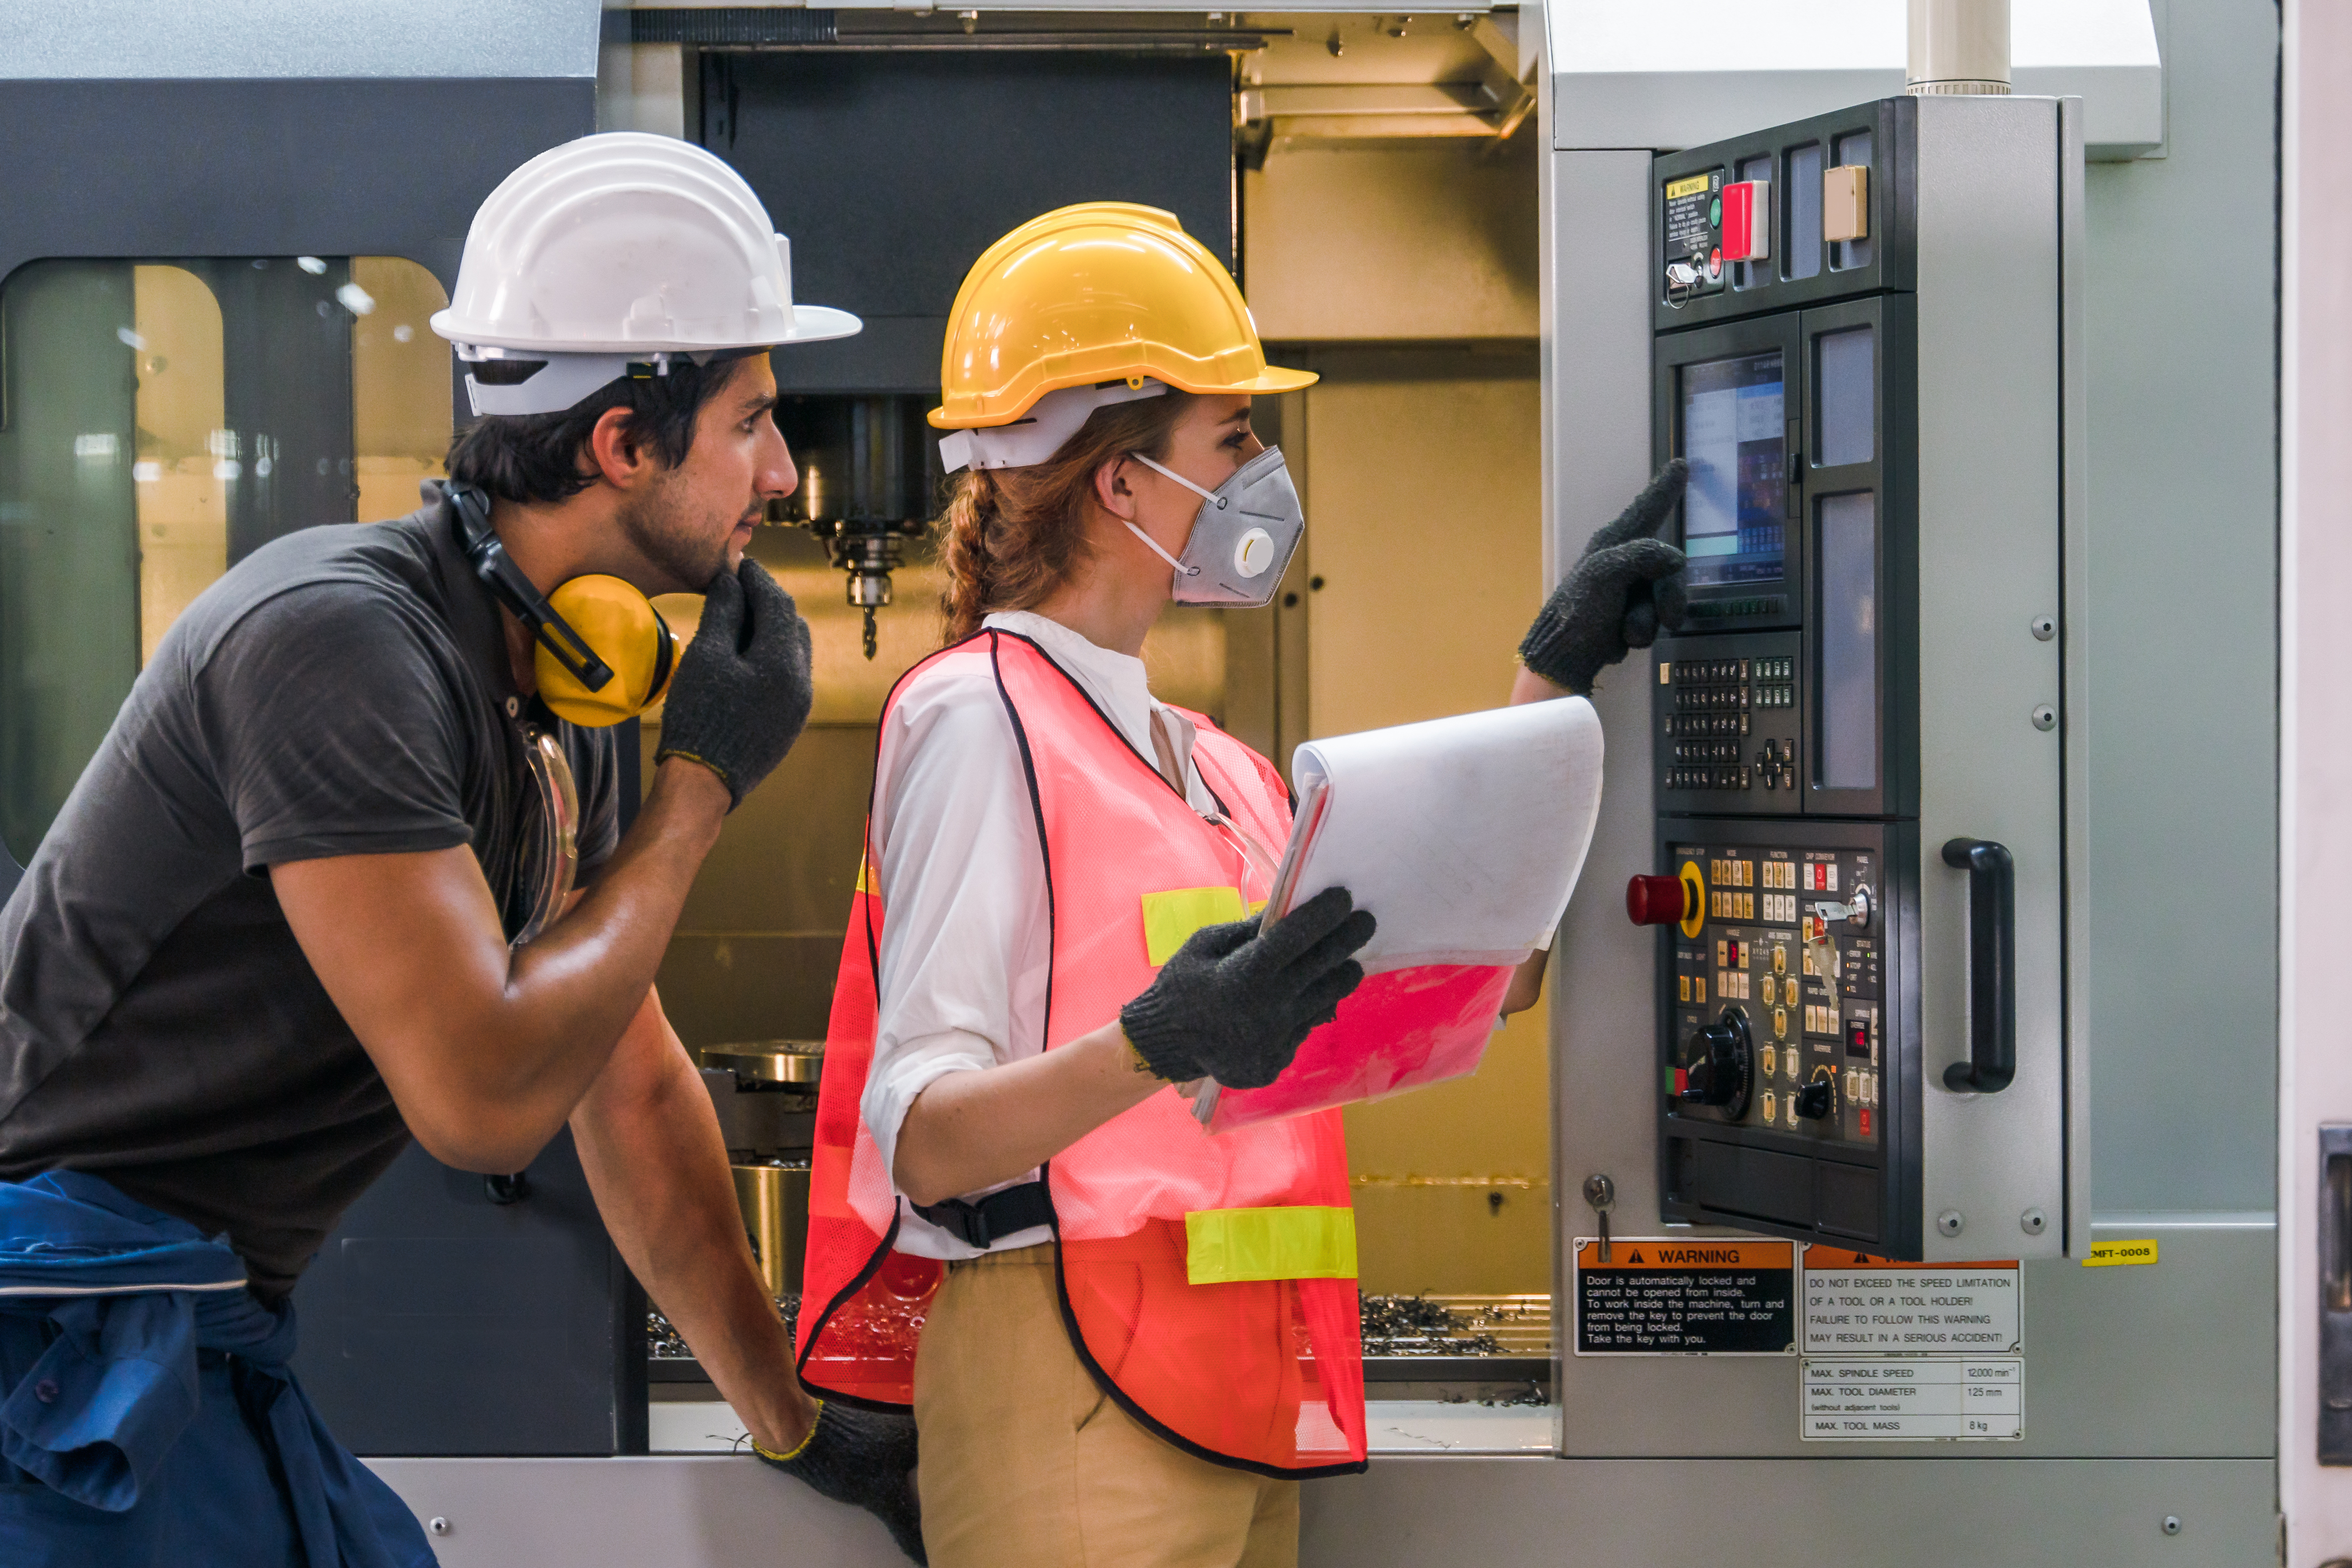 Two people in safety gear in front of an Engineer control panel